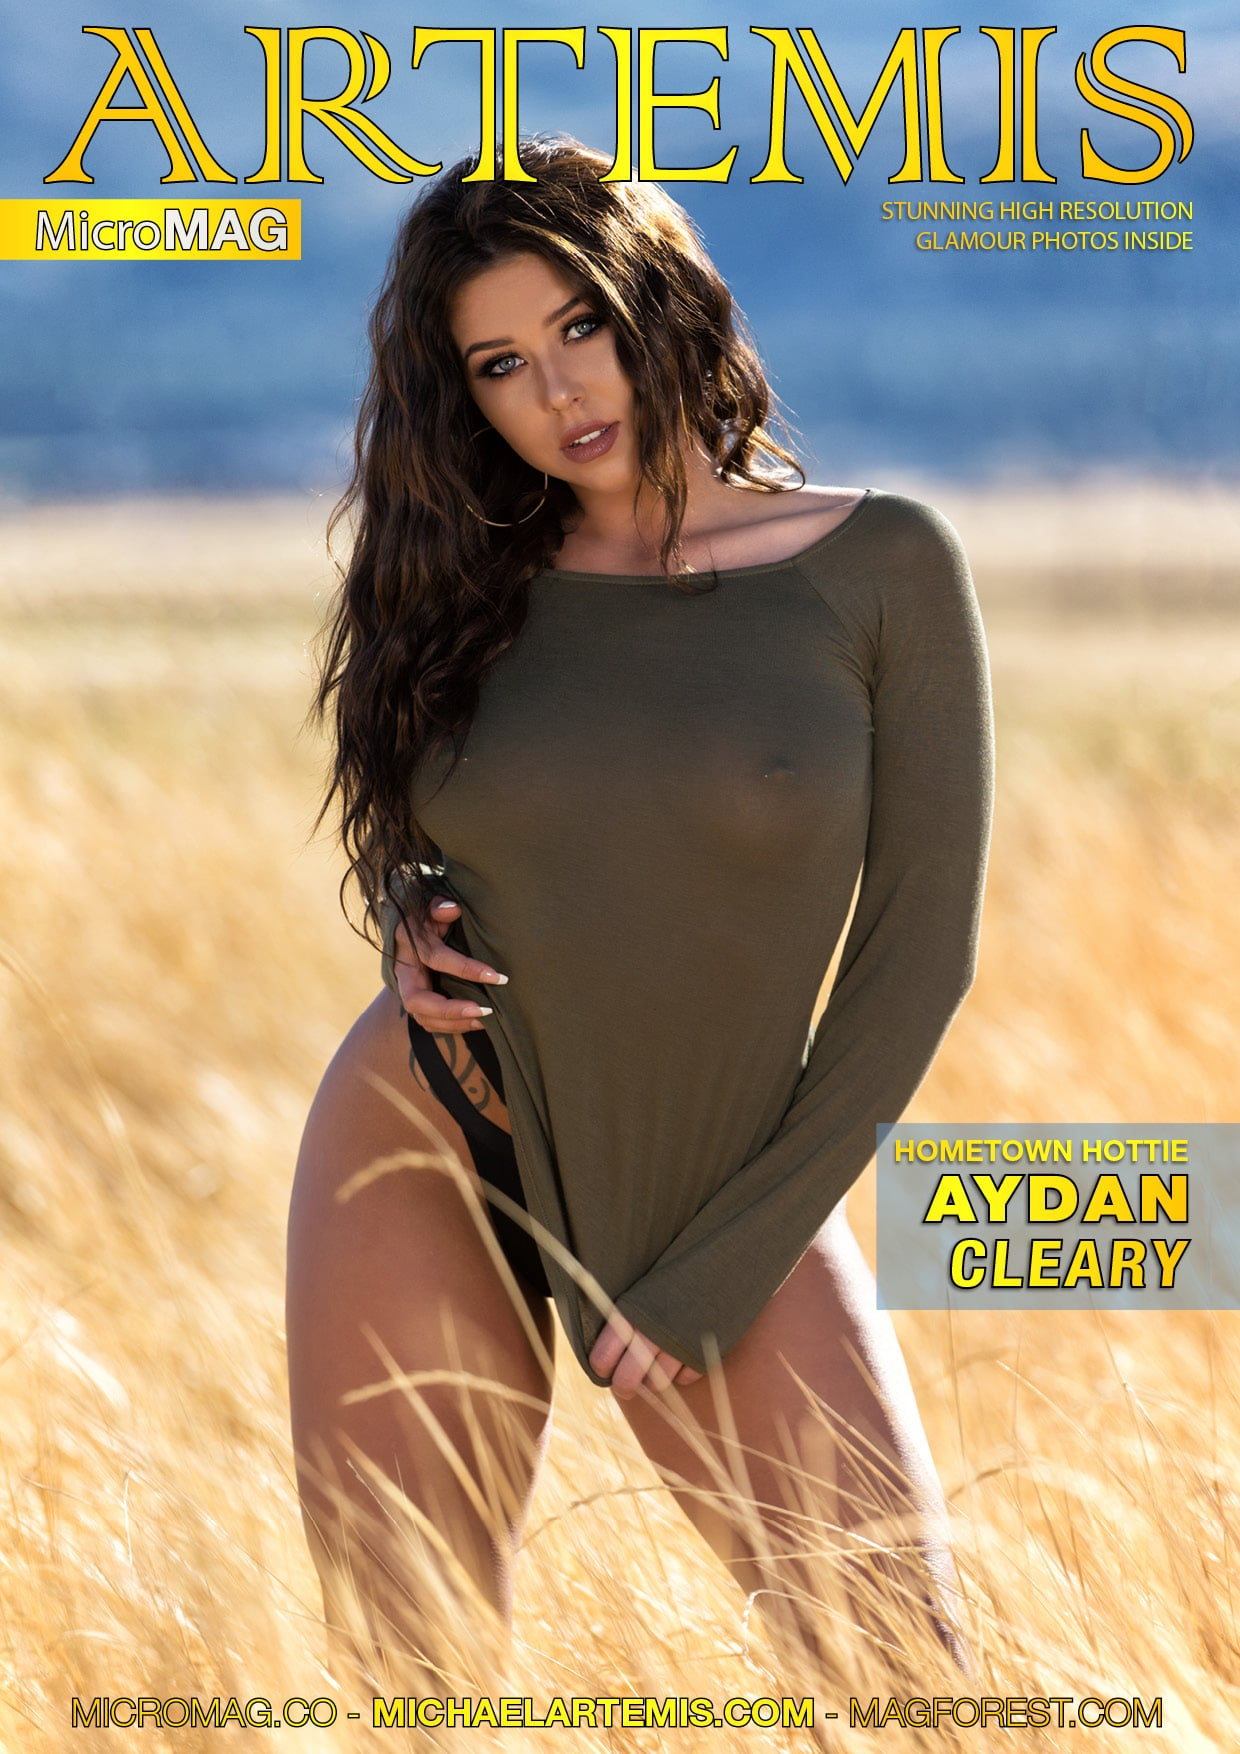 Gorgeous Girl in the Mountains - Featuring Aydan